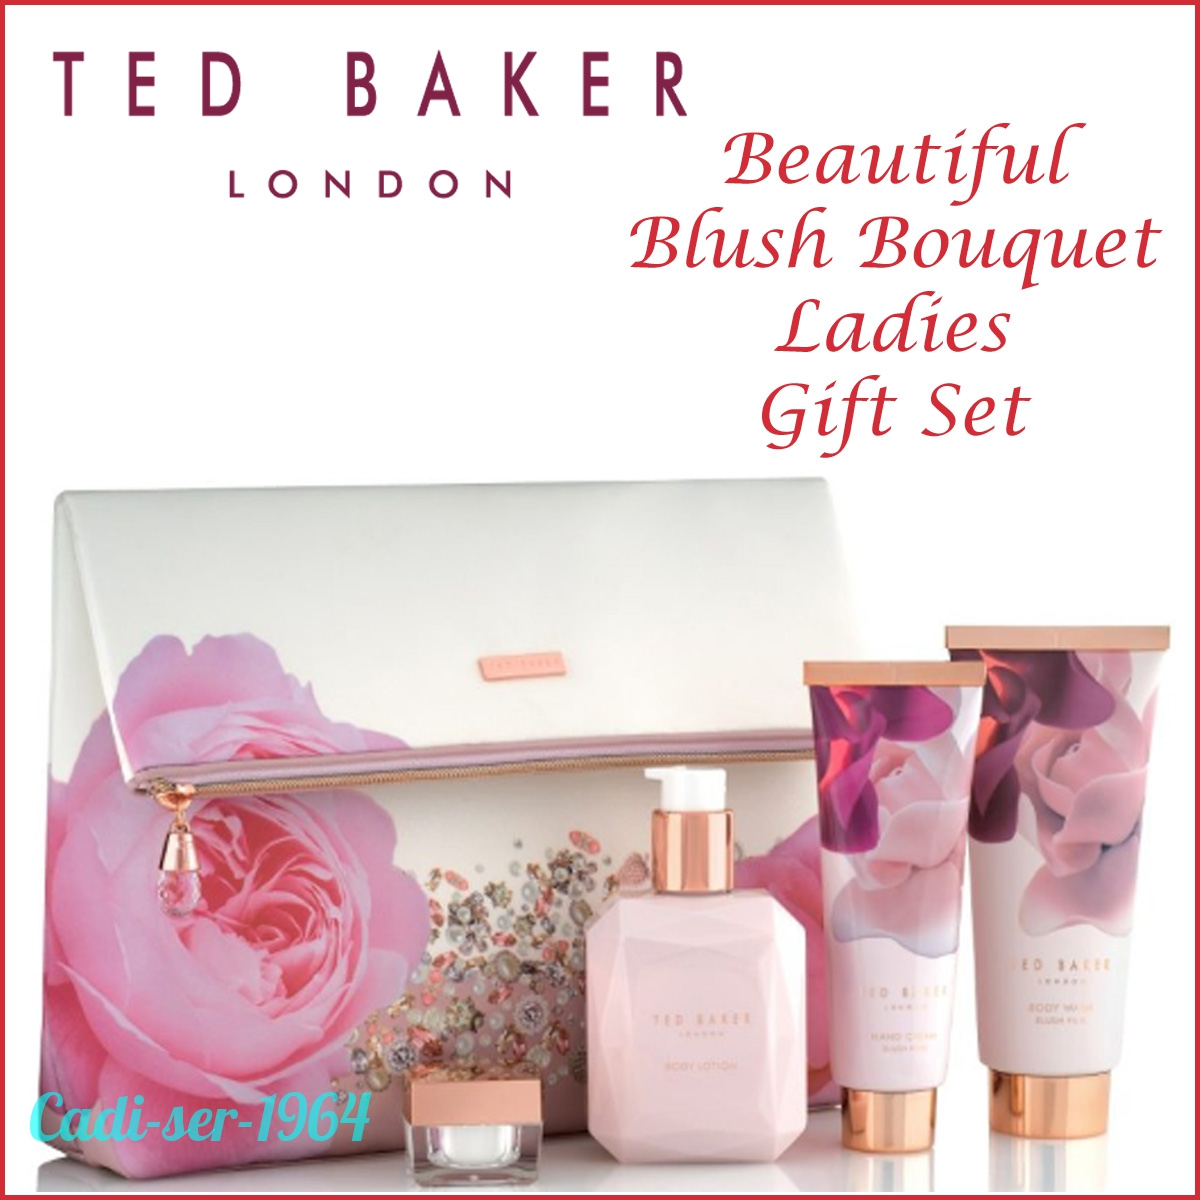 ed770843997f95 Details about NEW Ted Baker Blush Bouquet Cosmetic Gift Bag With Toiletries  Ladies Gift Set